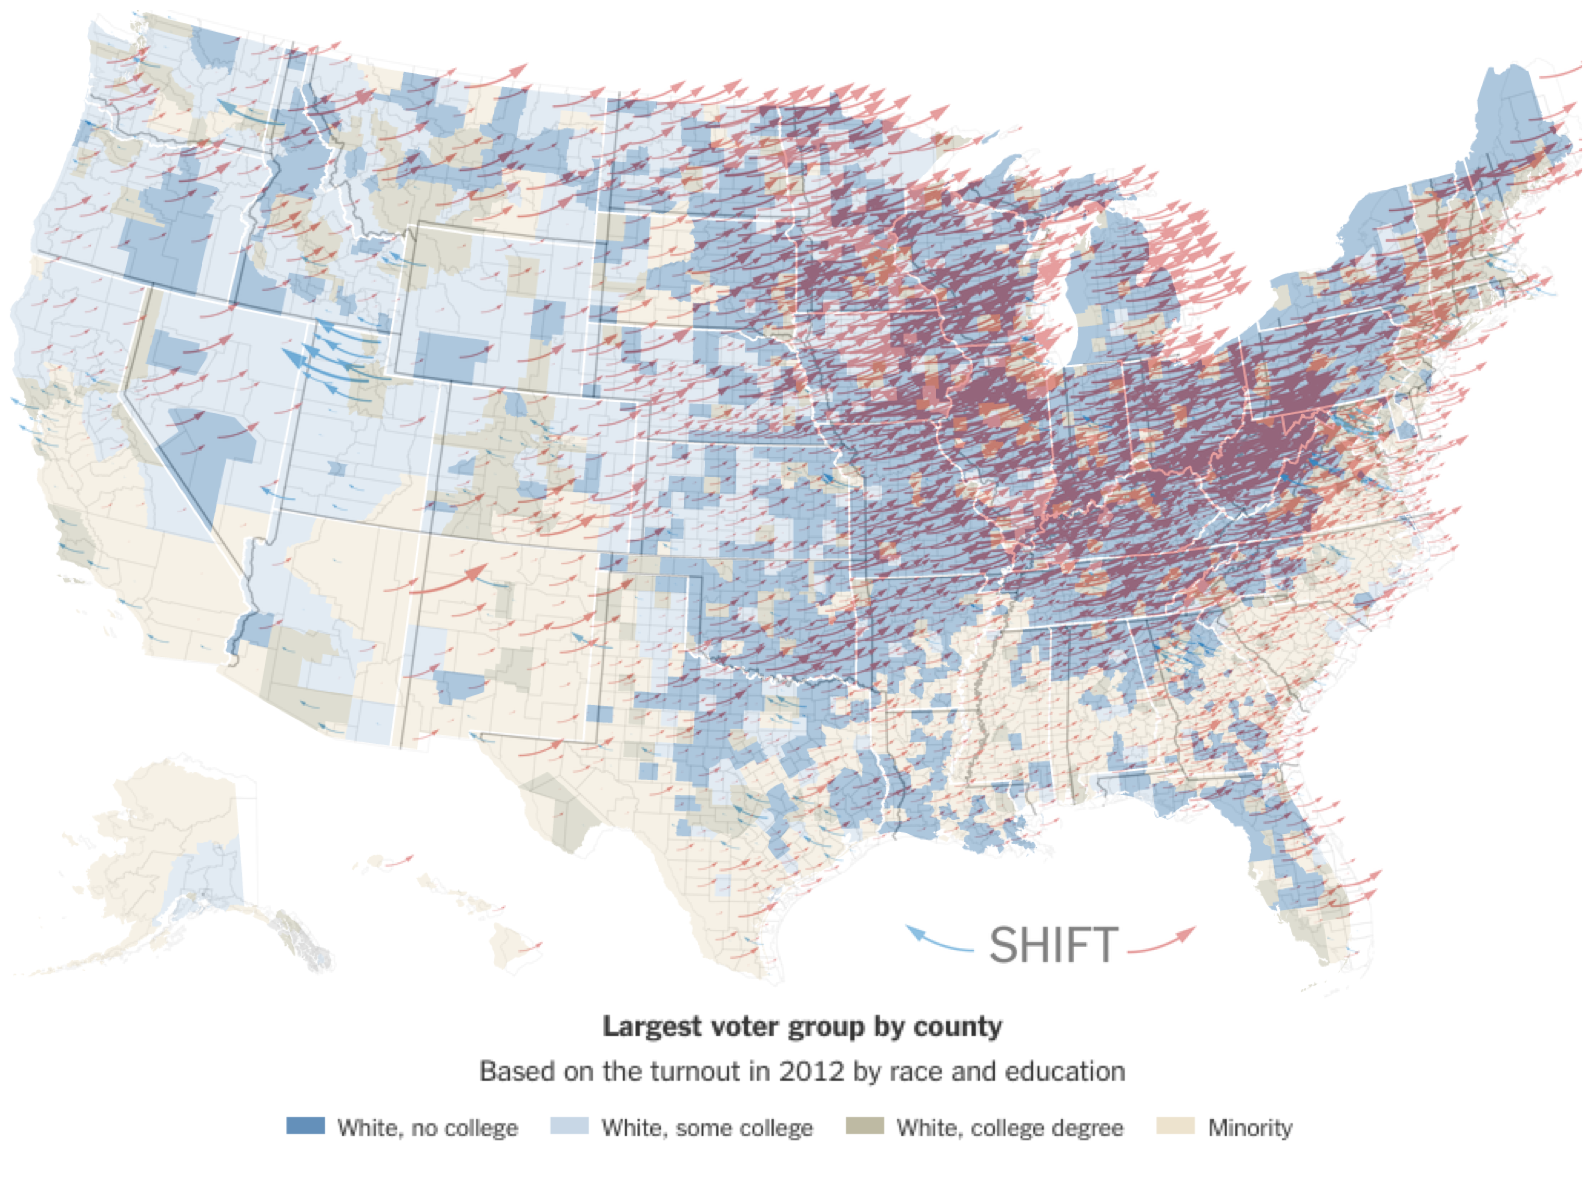 map-county-modal-group-shift